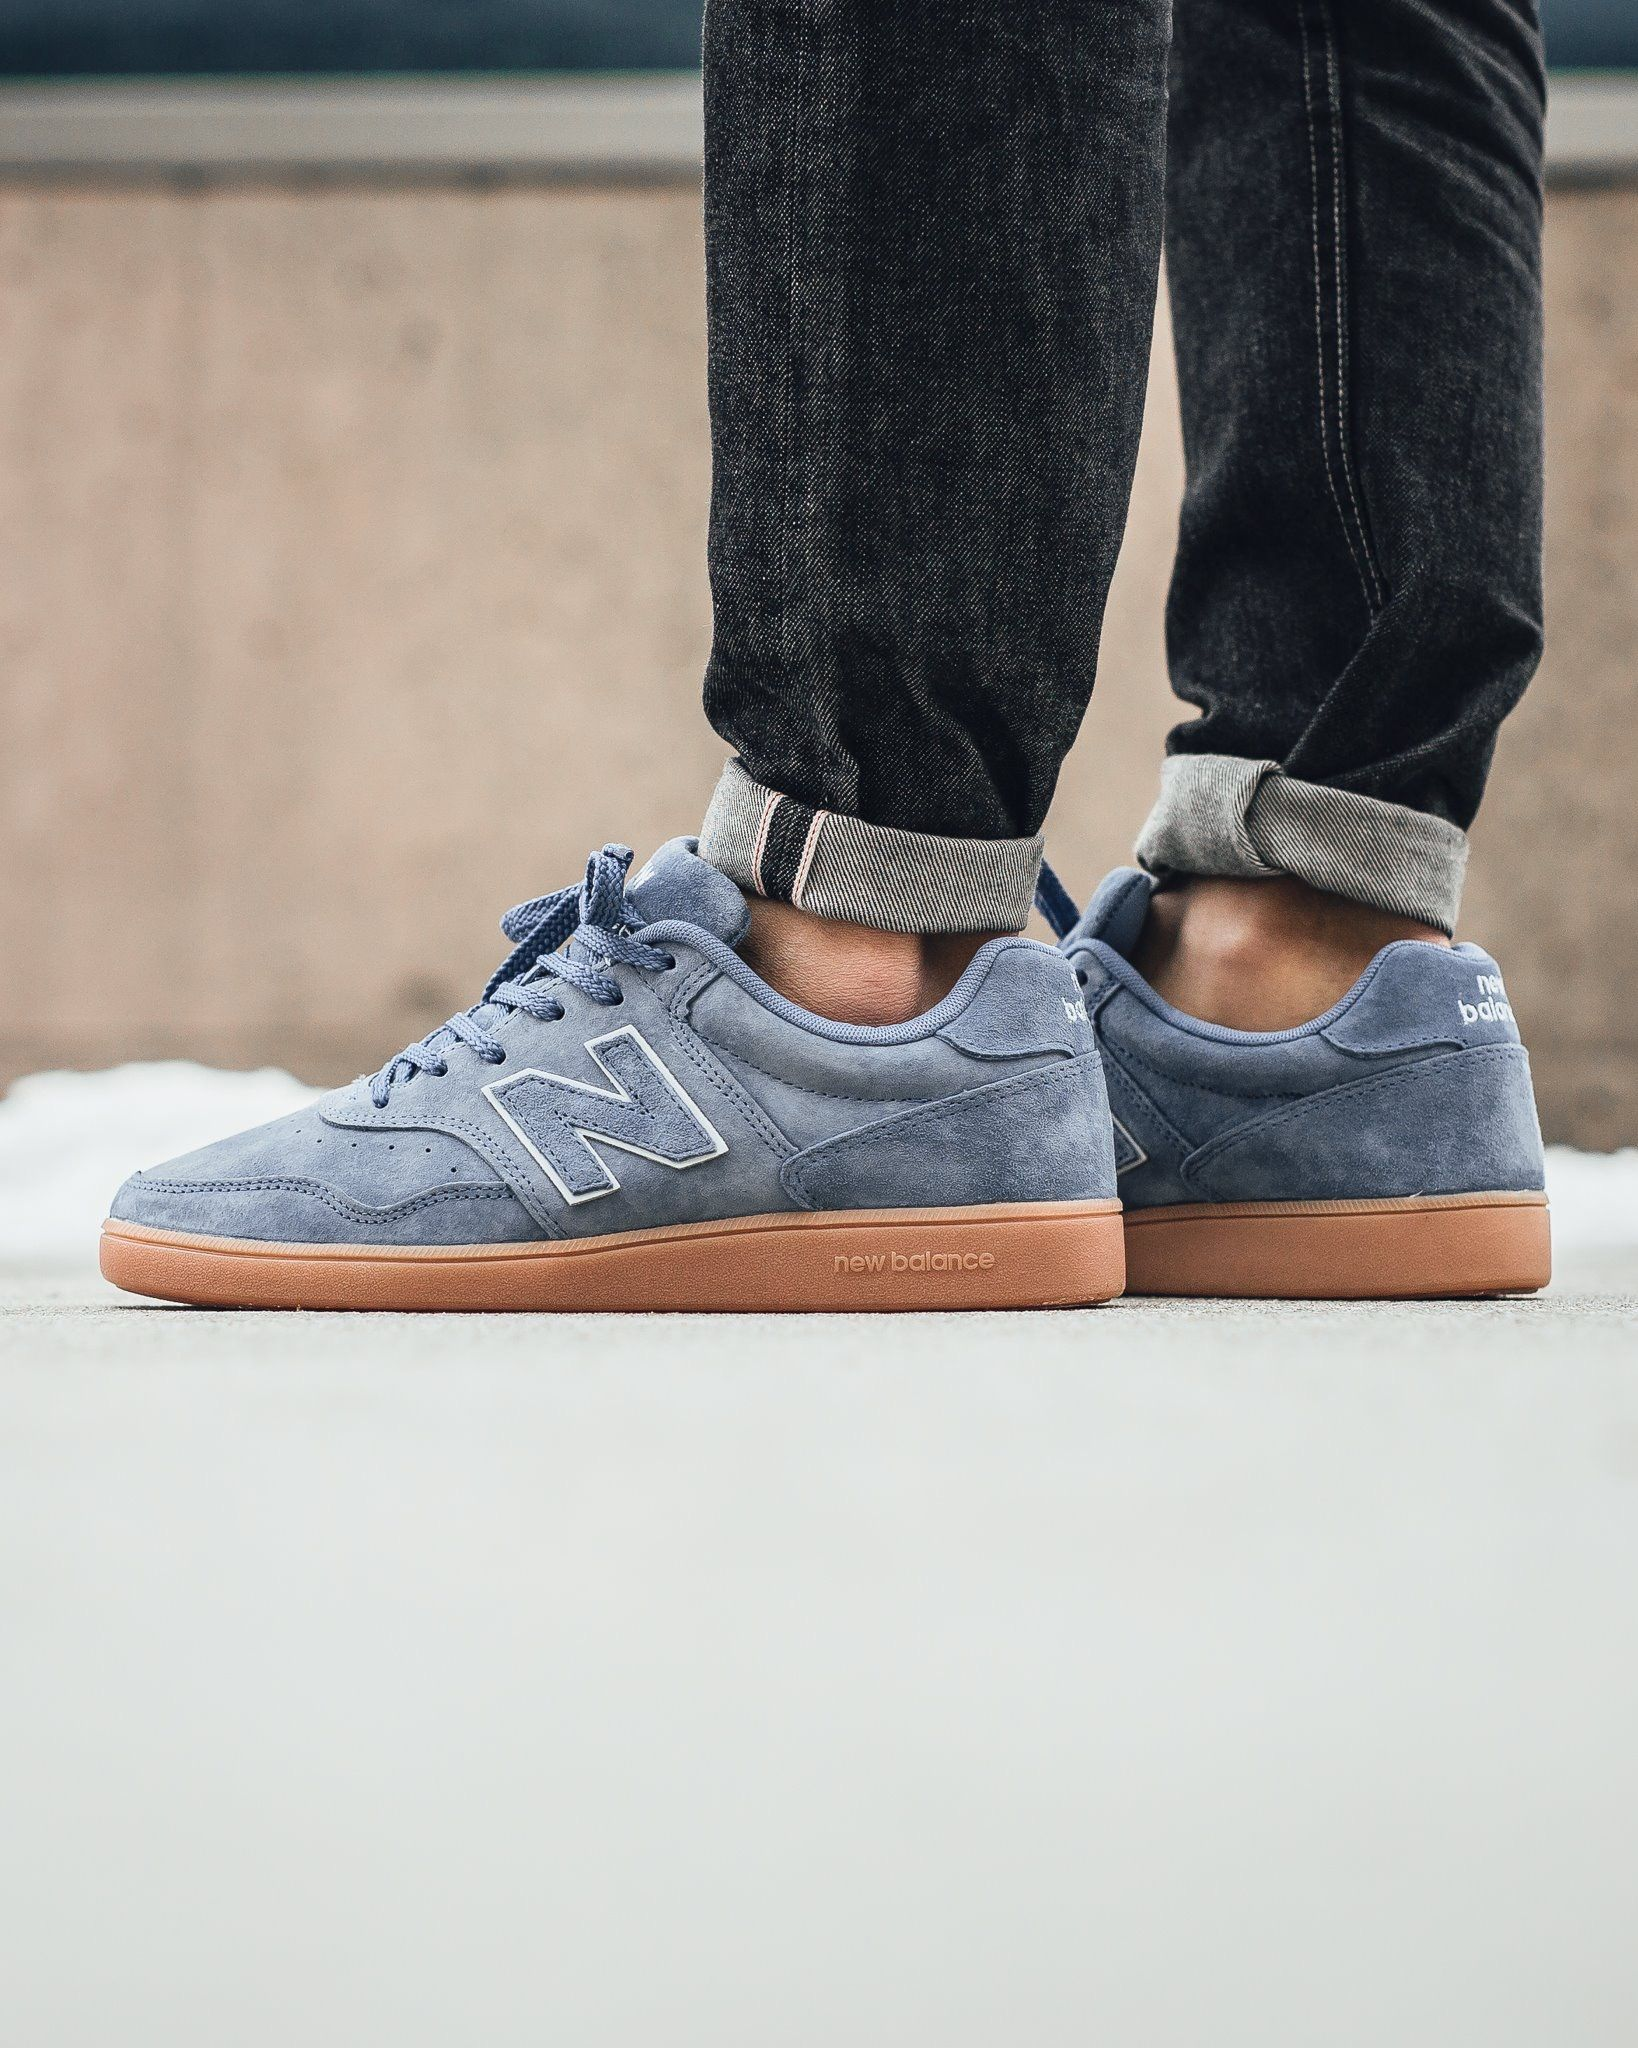 new balance split suede